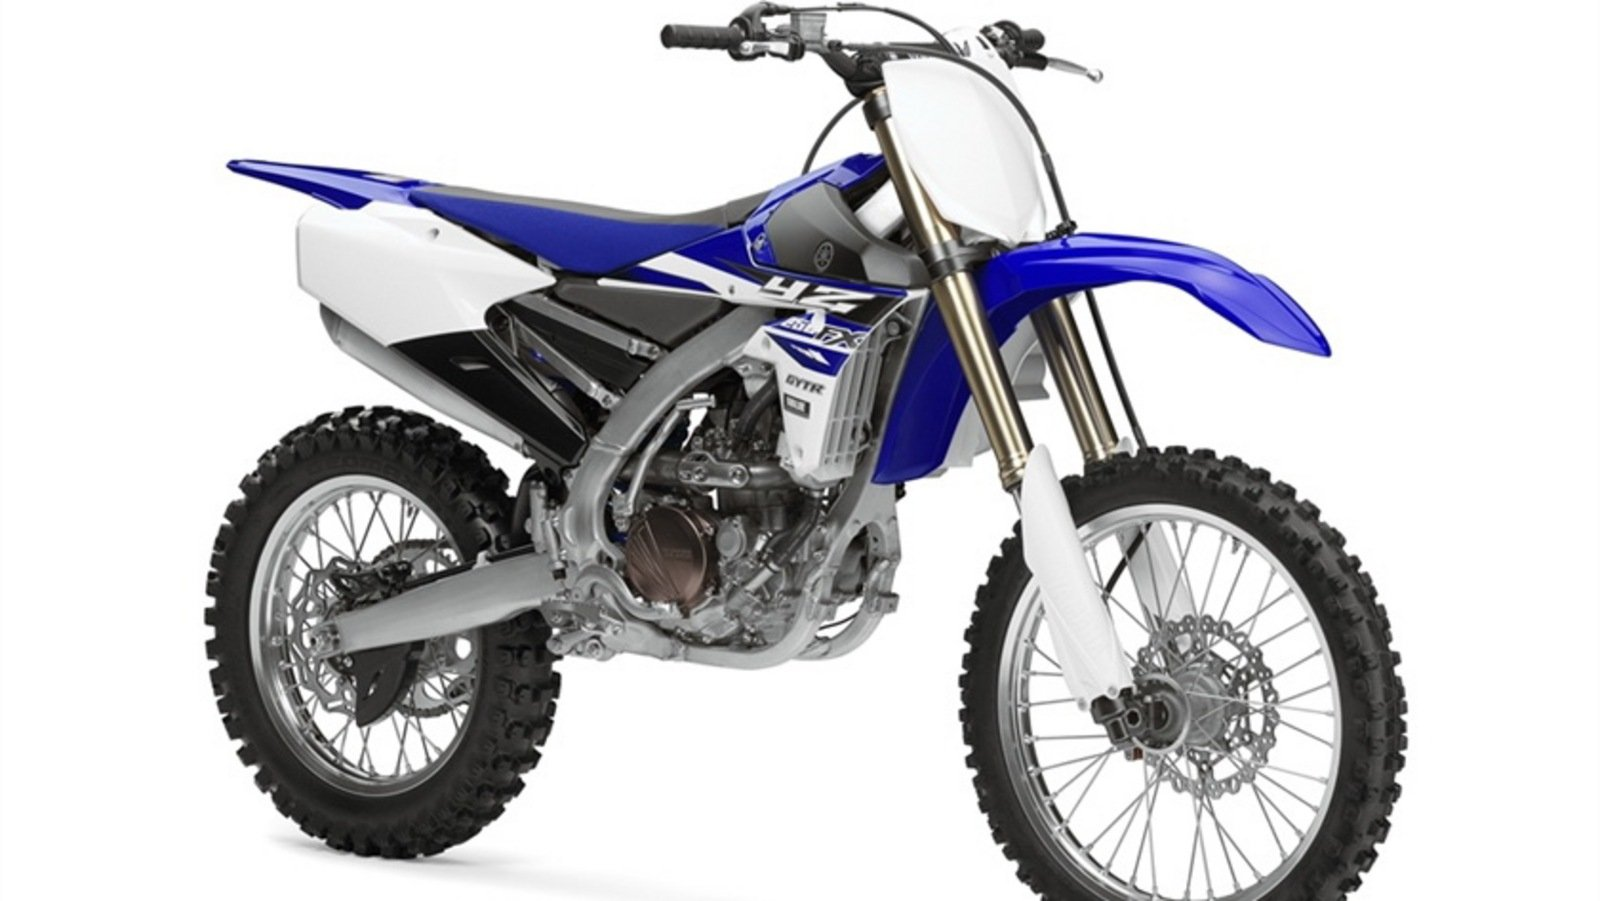 2015 Yamaha YZ250FX Review - Top Speed